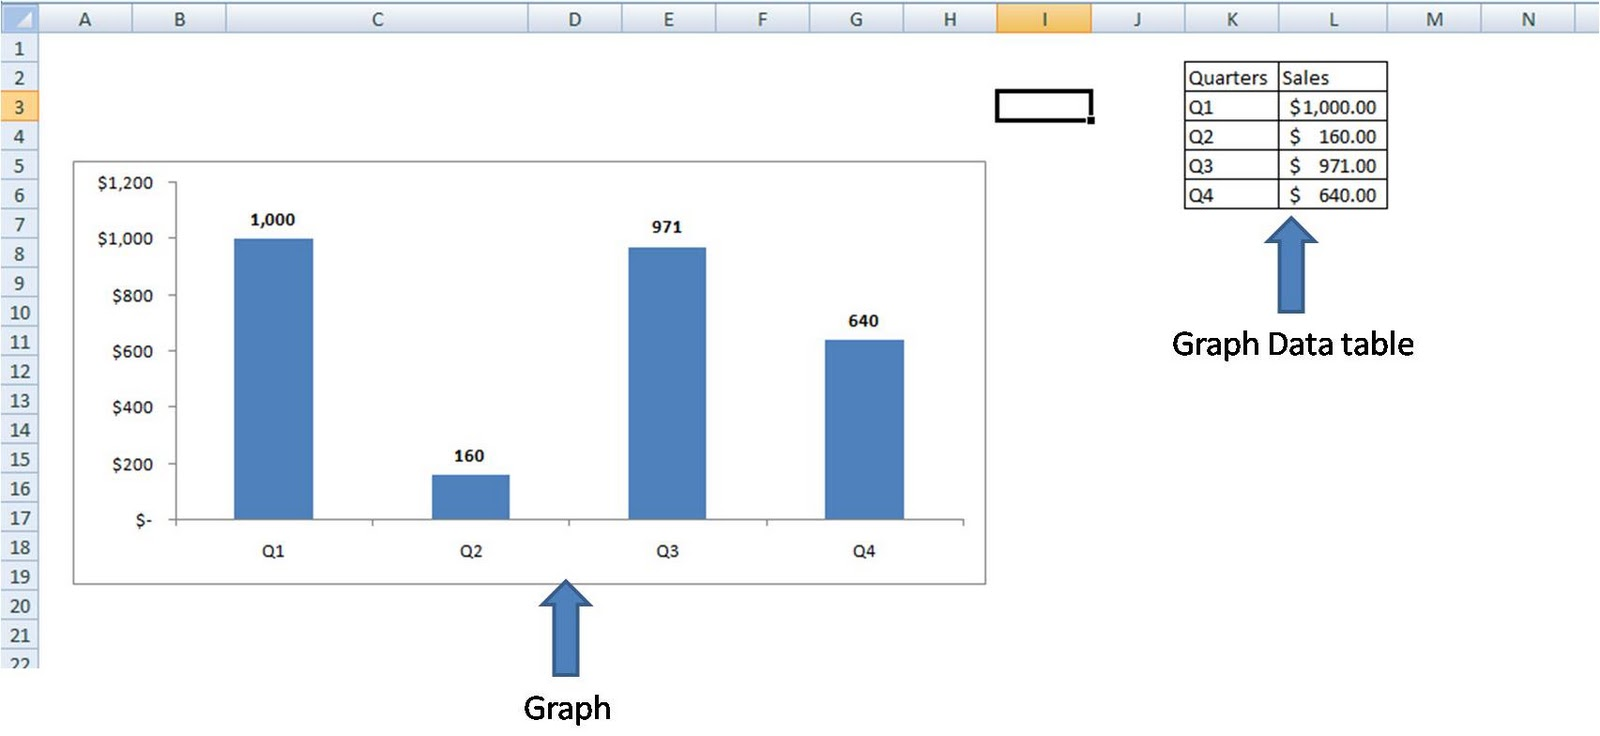 how to make an excel graph start at 0